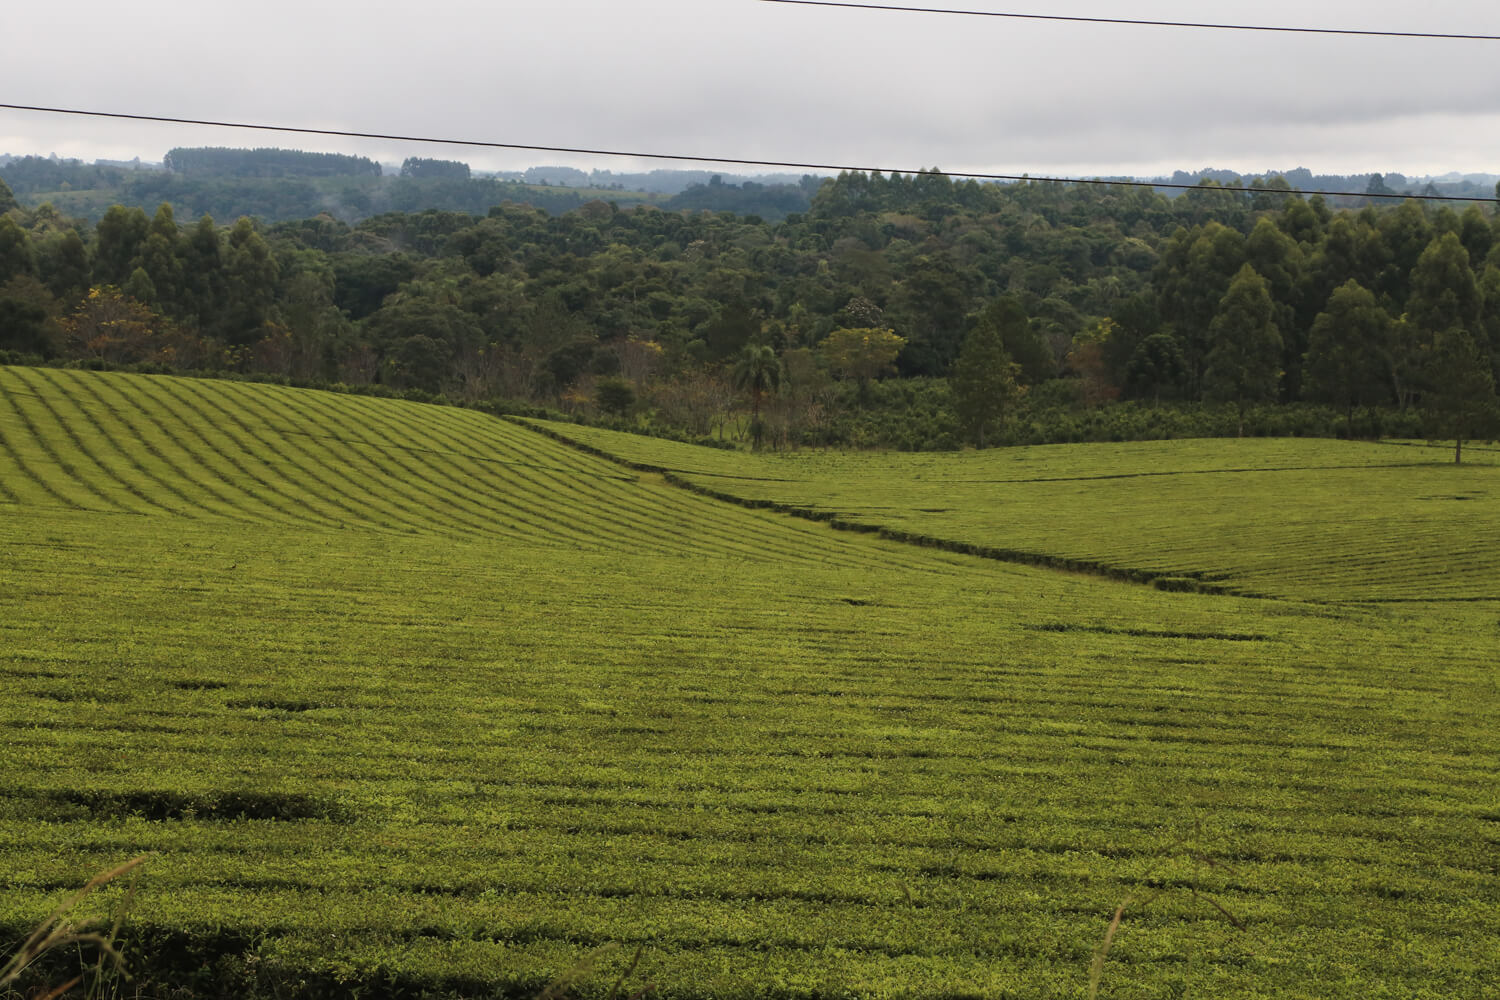 We were often driving by tea plantations like this one.